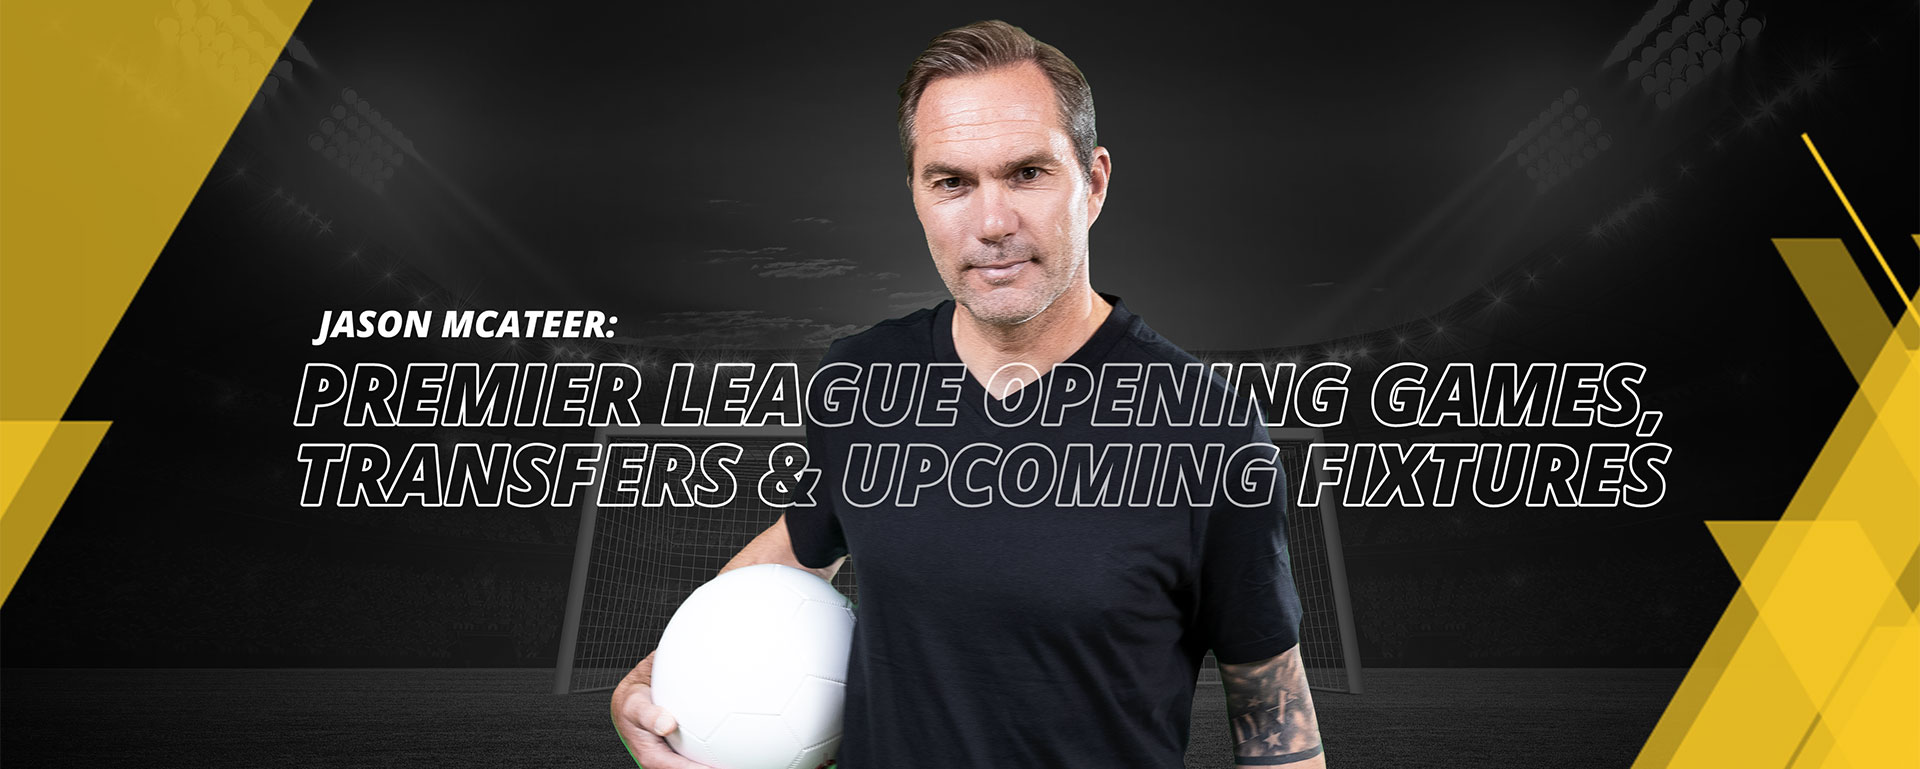 JASON MCATEER: OPENING GAMES, TRANSFERS AND MORE